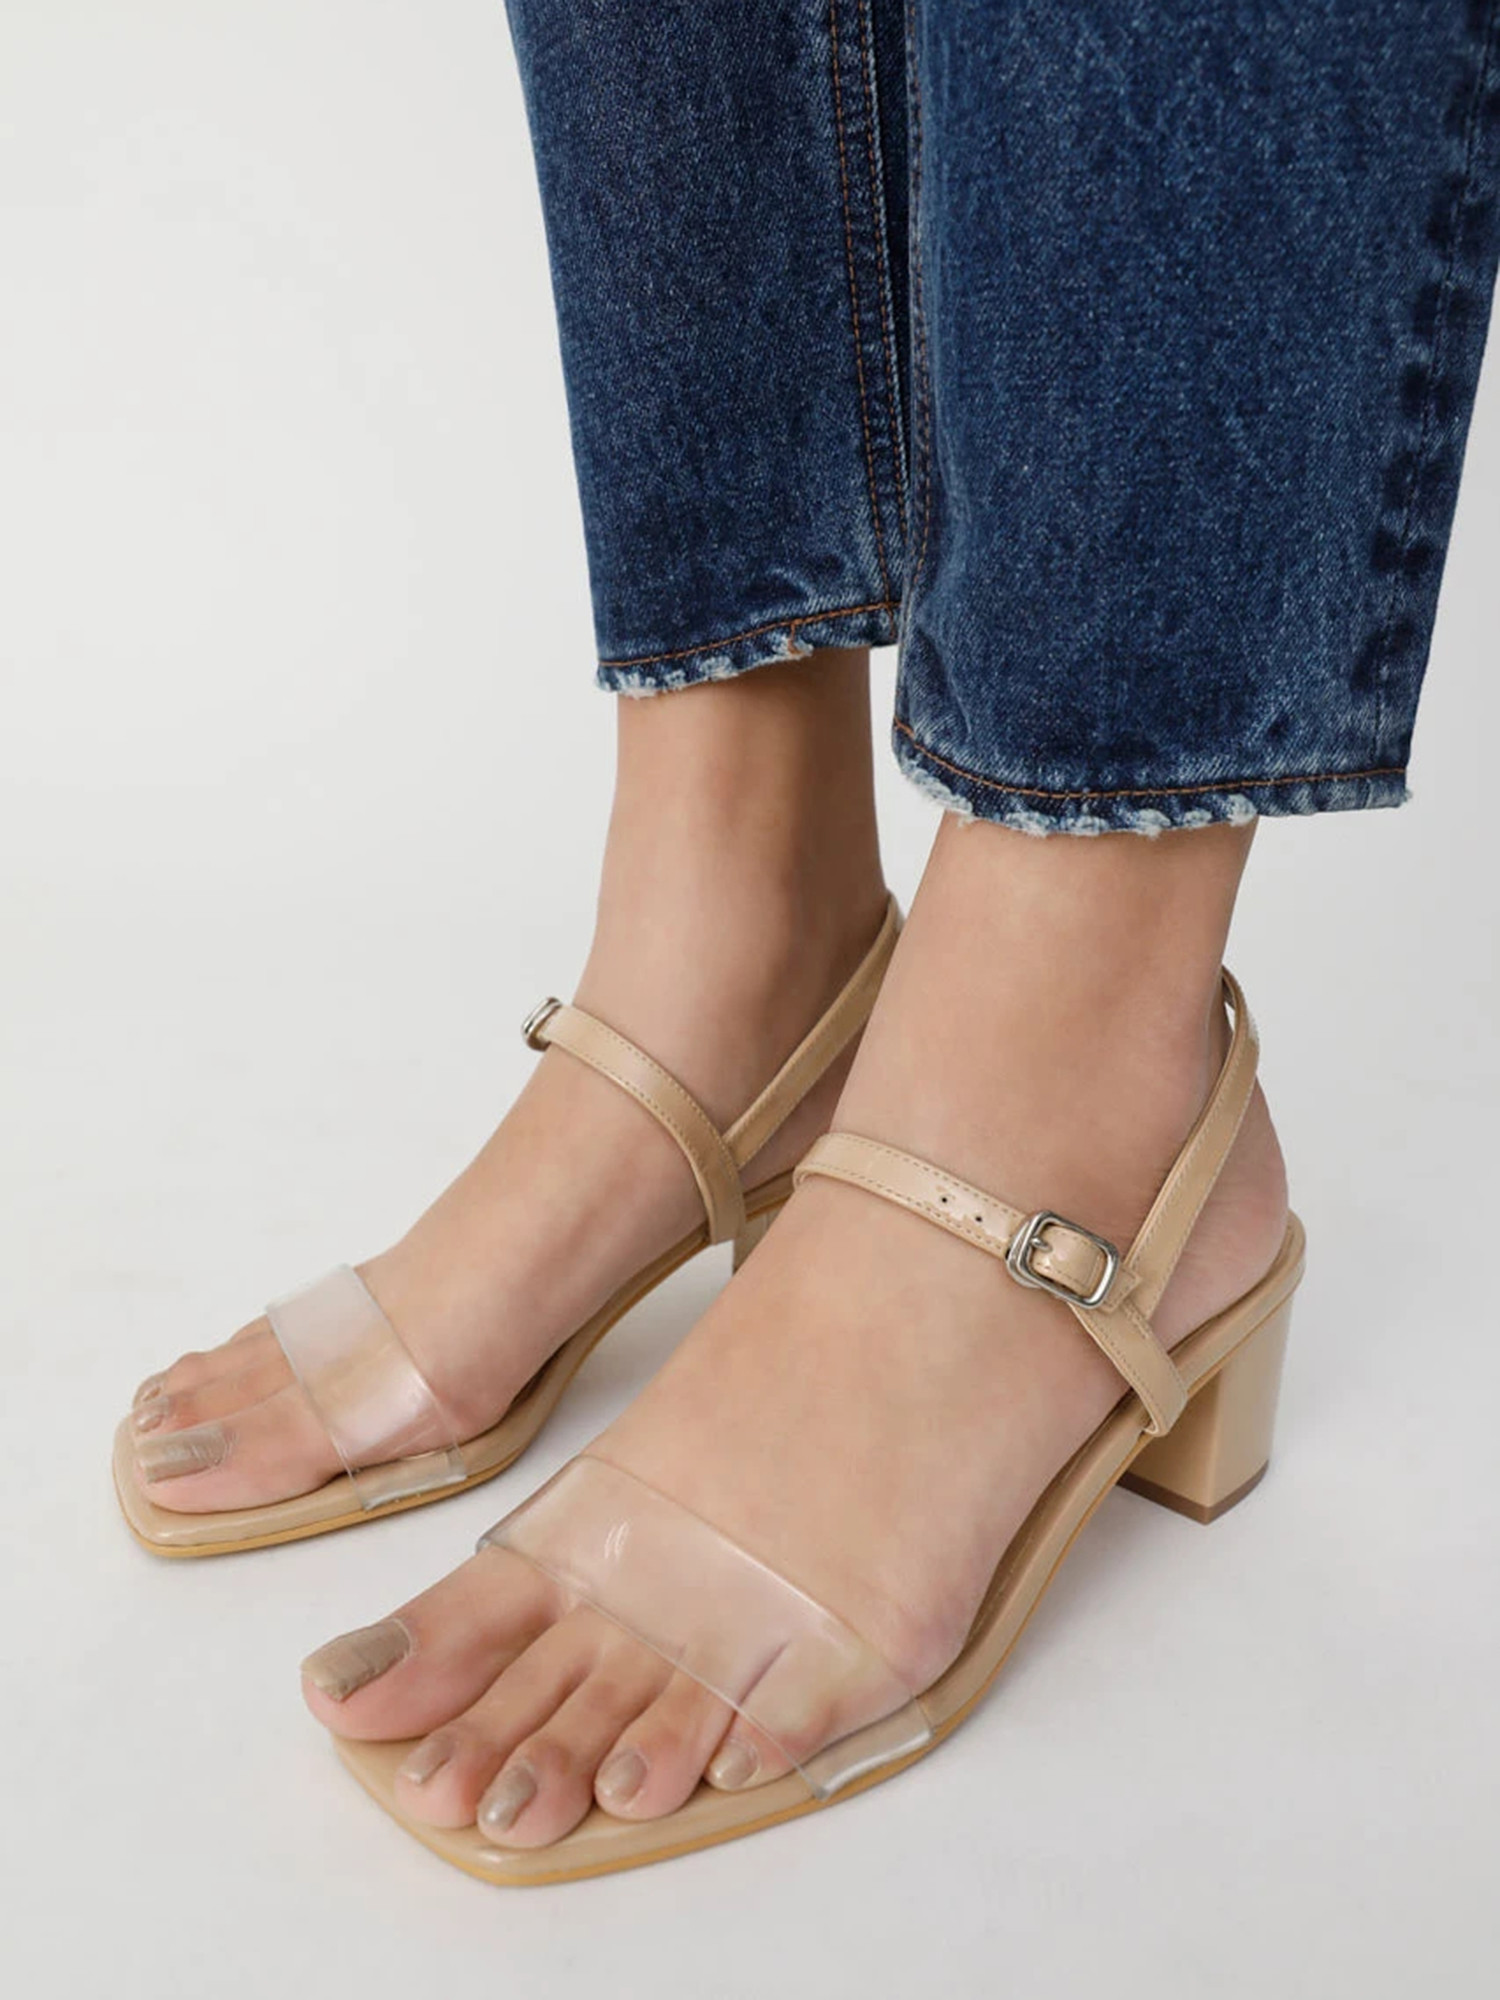 JUCY COLOR SANDALS